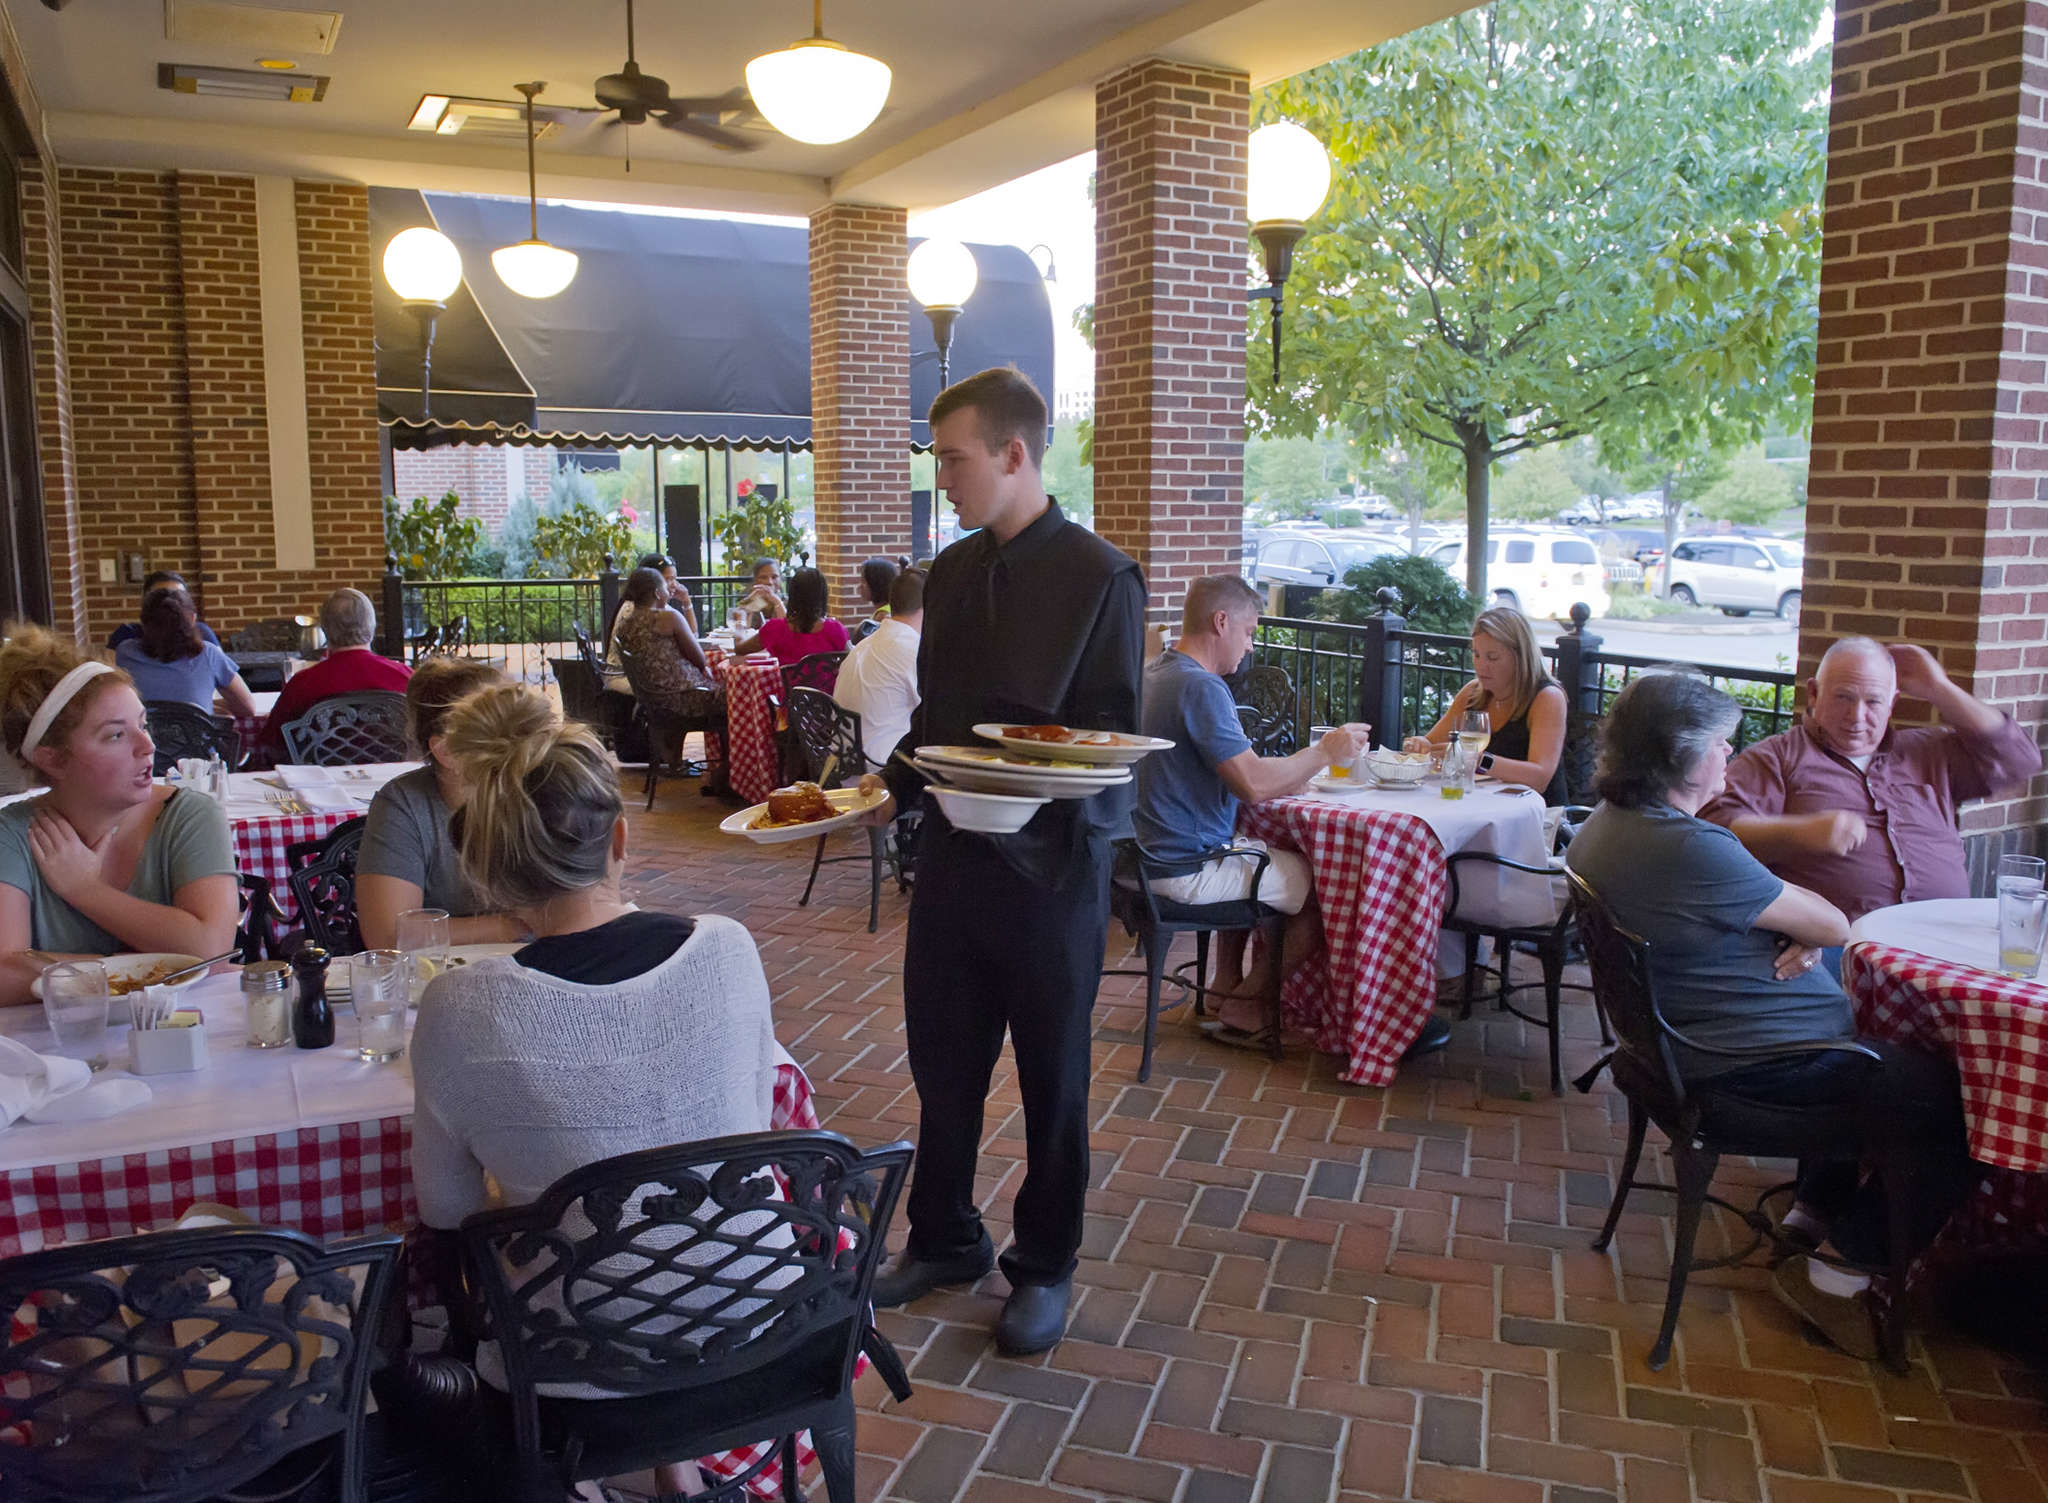 Waiter Ryan Eckel (left) serves customers on the patio of Maggiano´s Little Italy at the Cherry Hill Mall.